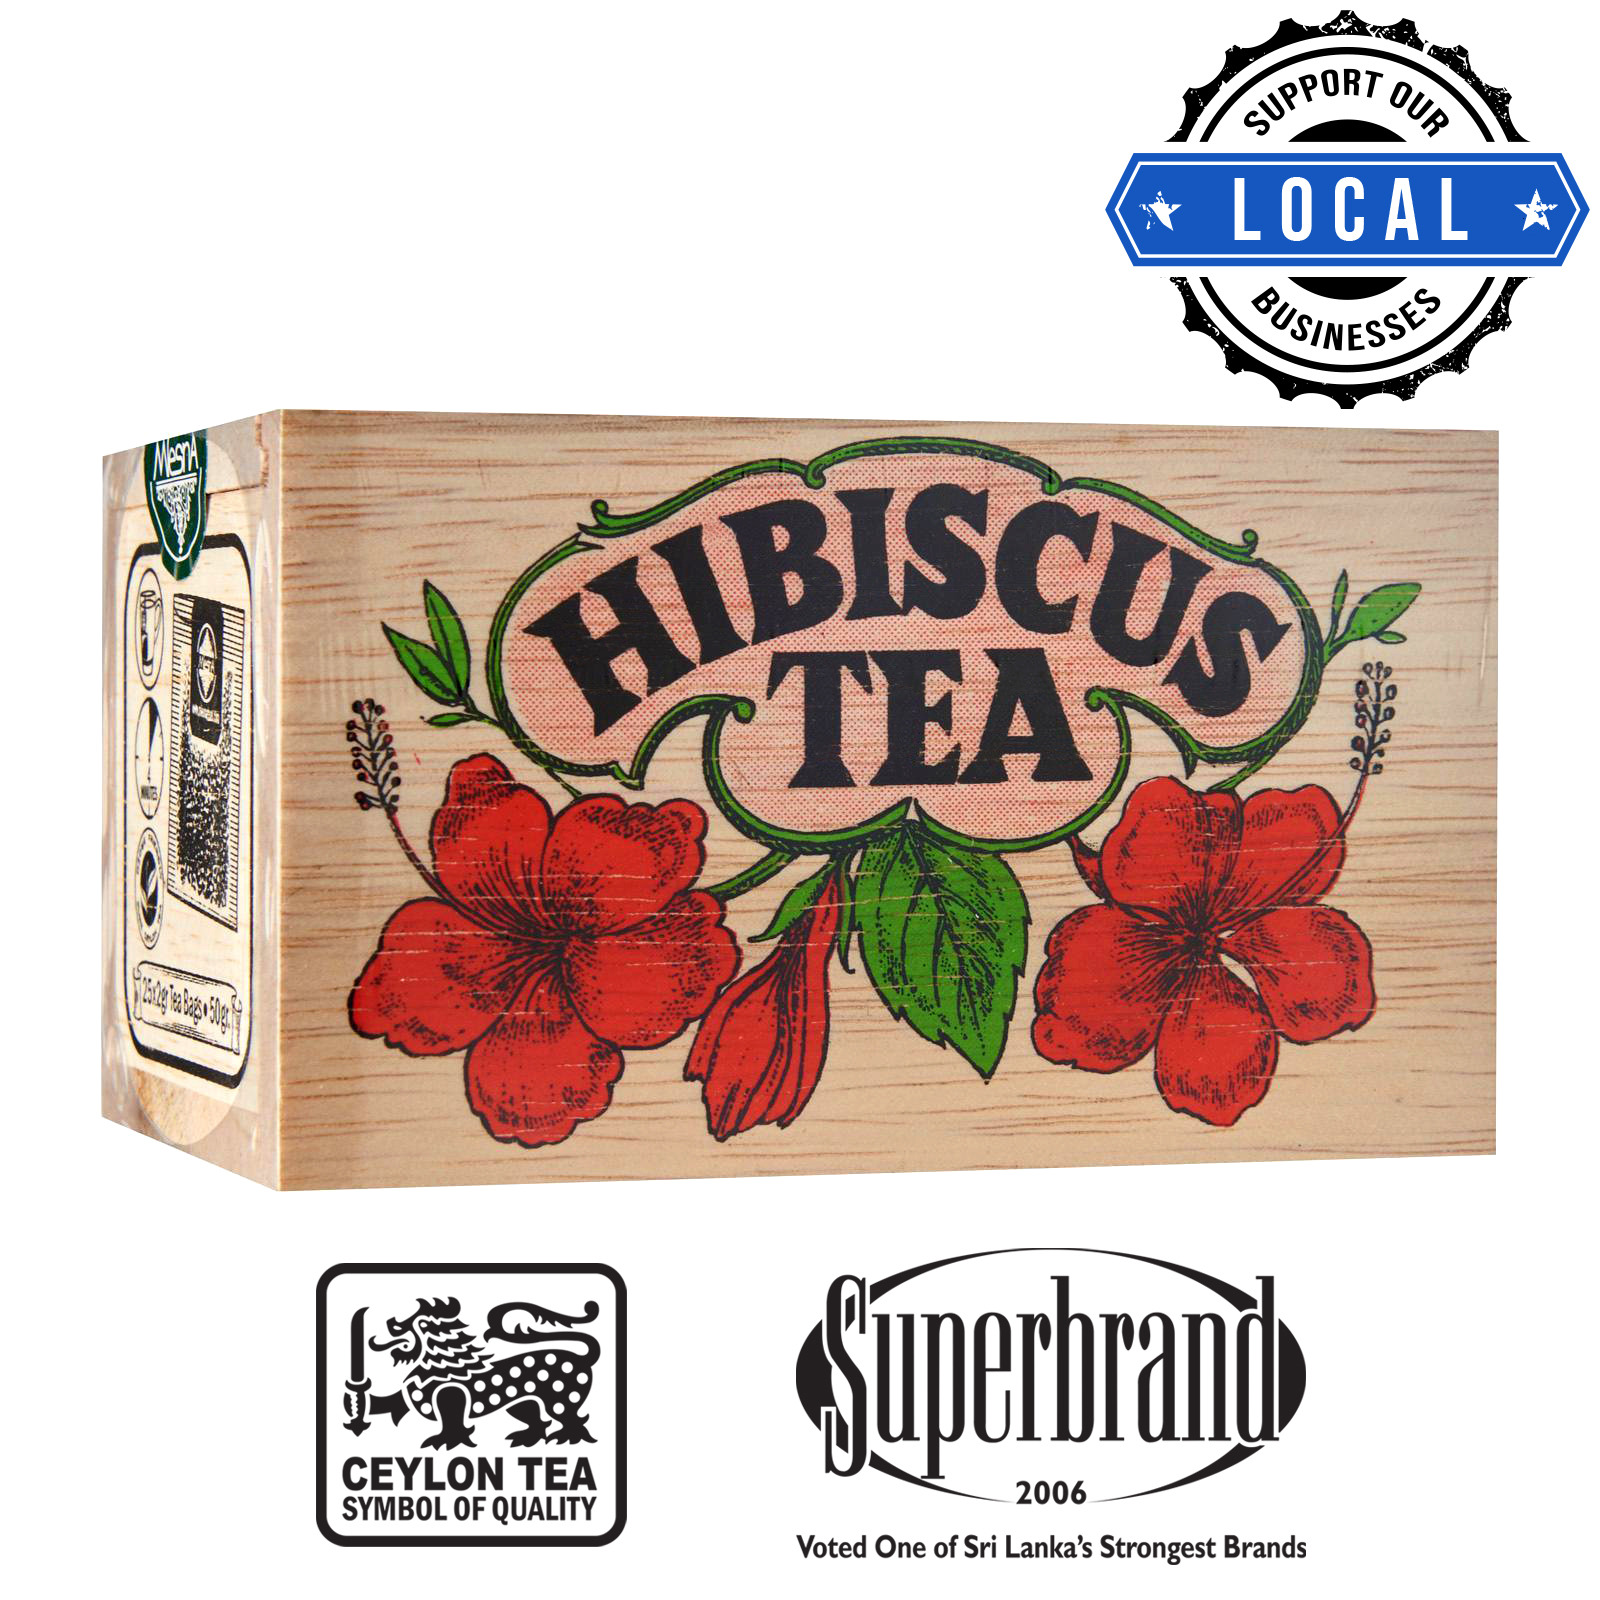 Mlesna Tea Wooden Box - Hibiscus